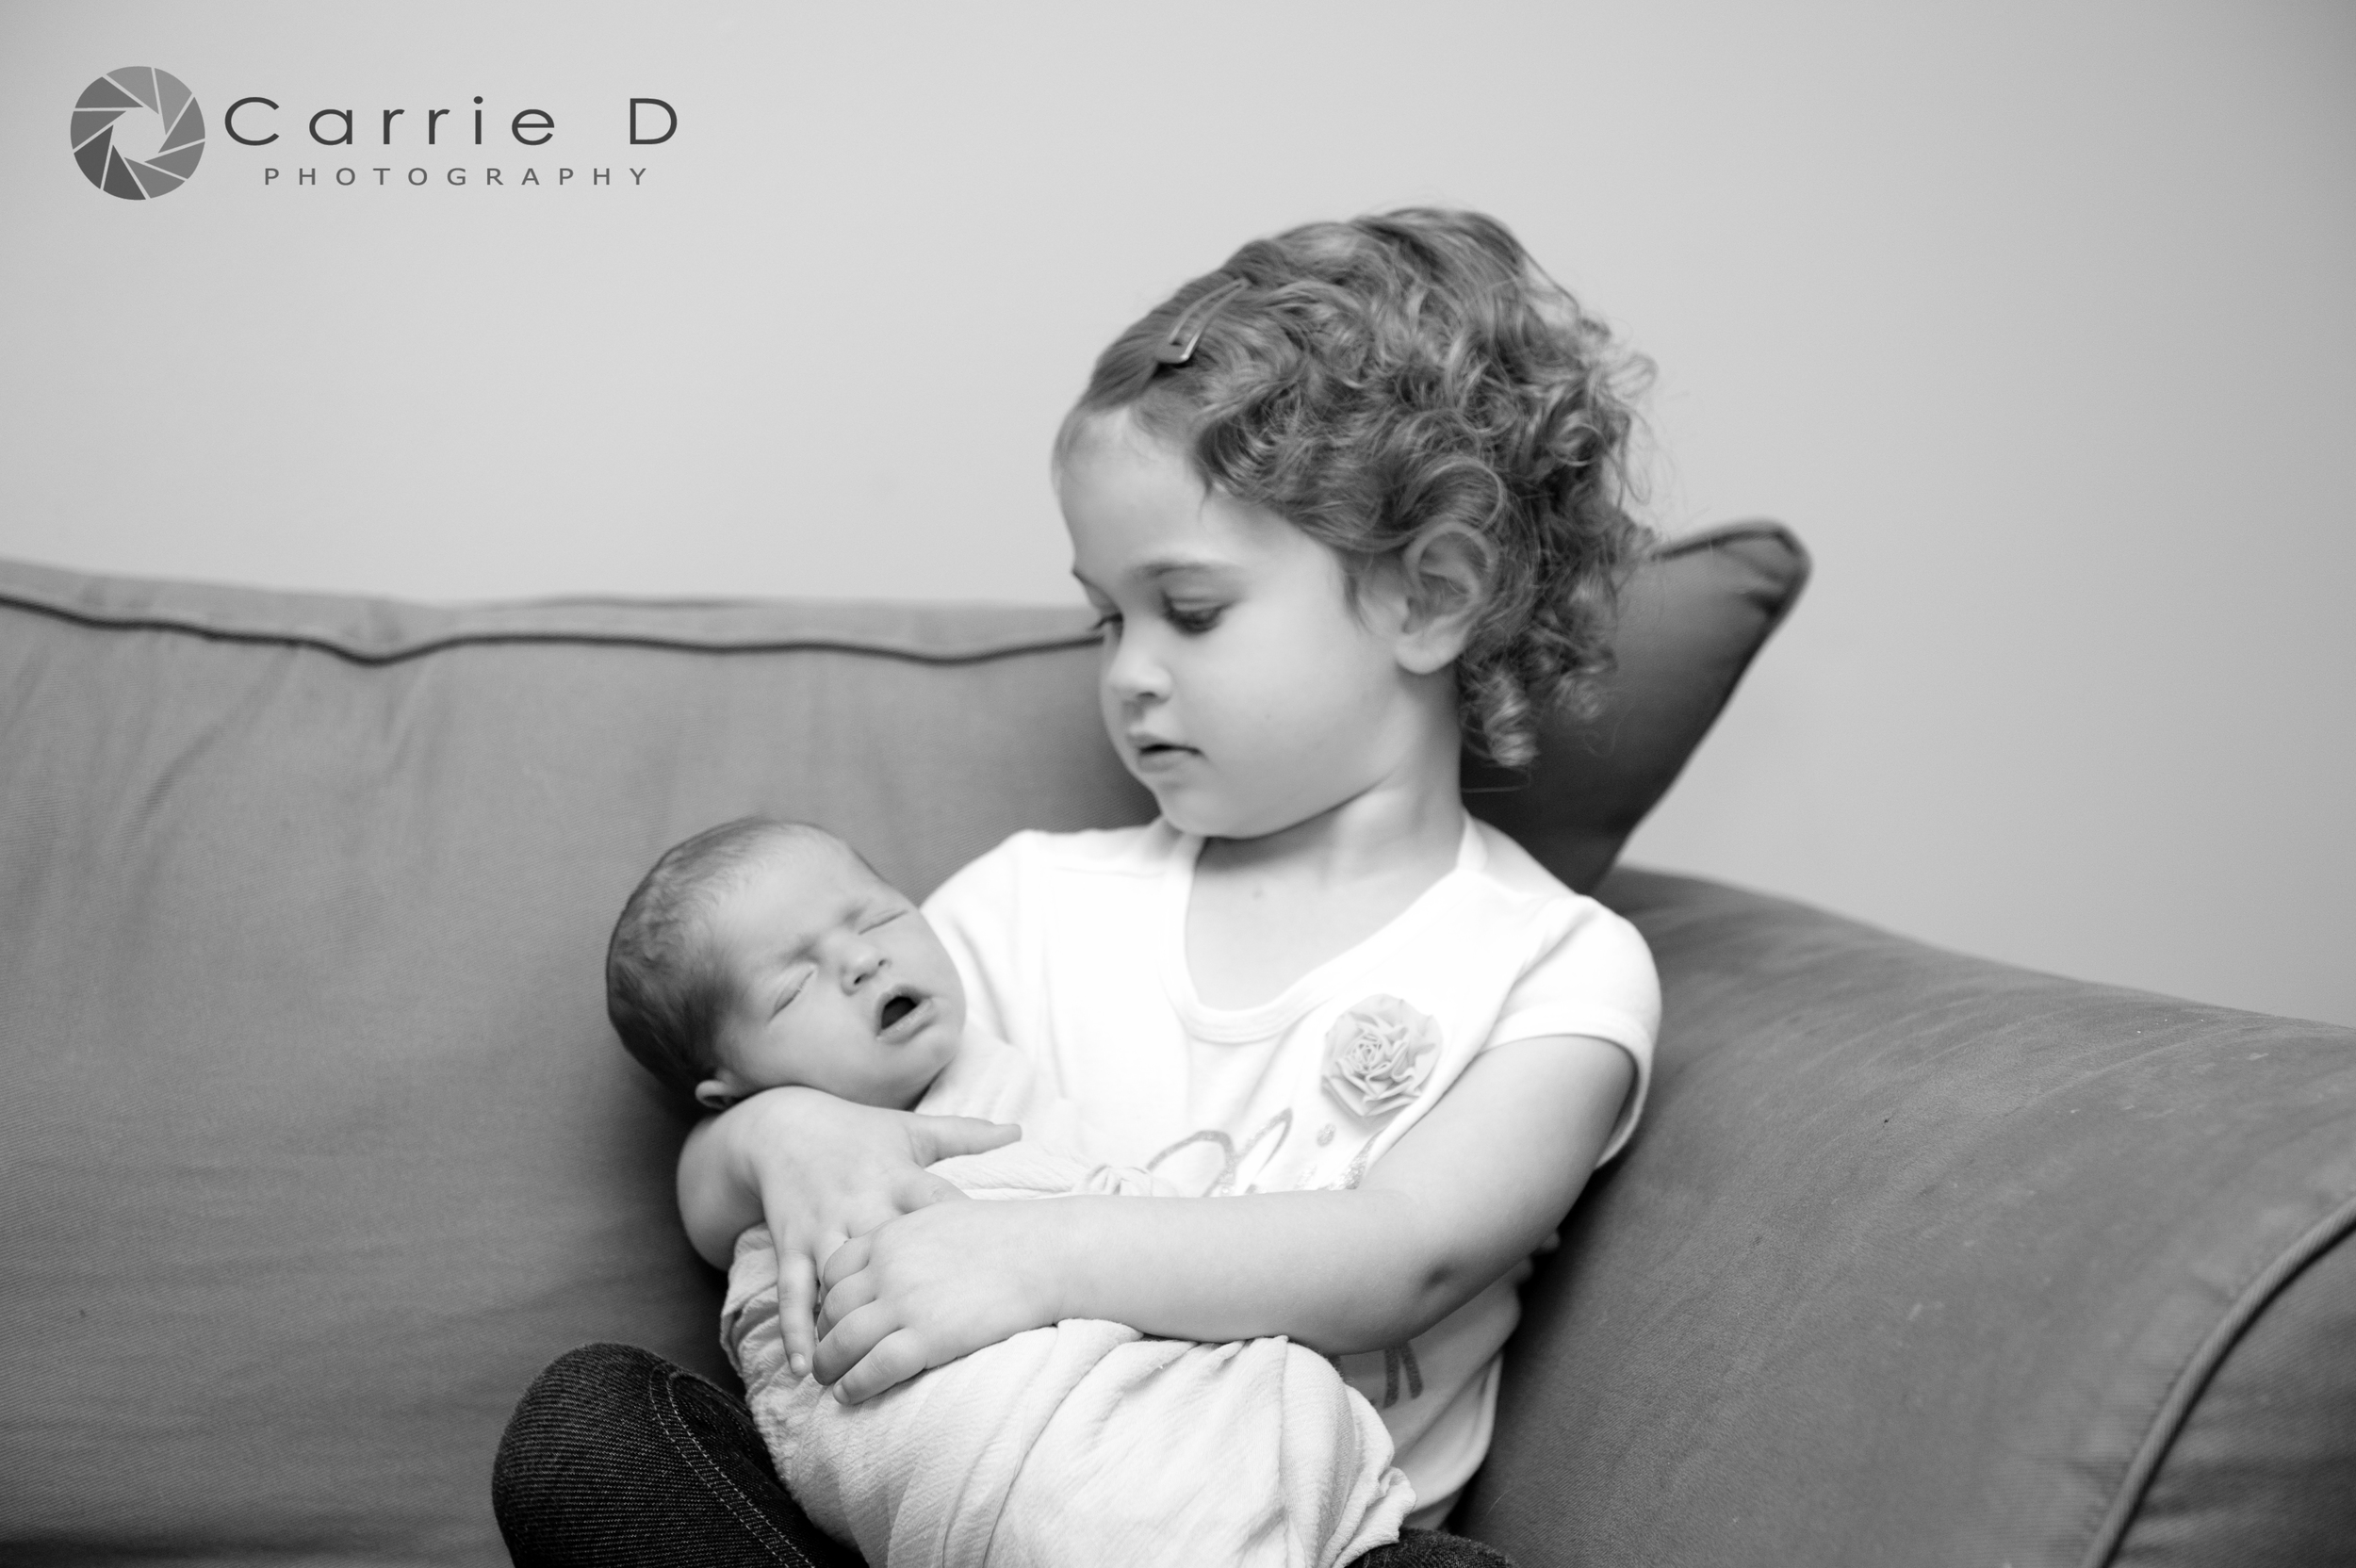 Baltimore Newborn Photographer - Baltimore Natural Light Newborn Photographer - Baltimore Sibling Photographer - Baltimore Natural Light Sibling Photographer - Baltimore Lifestyle Photographer - Baltimore Natural Light Lifestyle Photographer - Newborn Poses - Sibling Poses